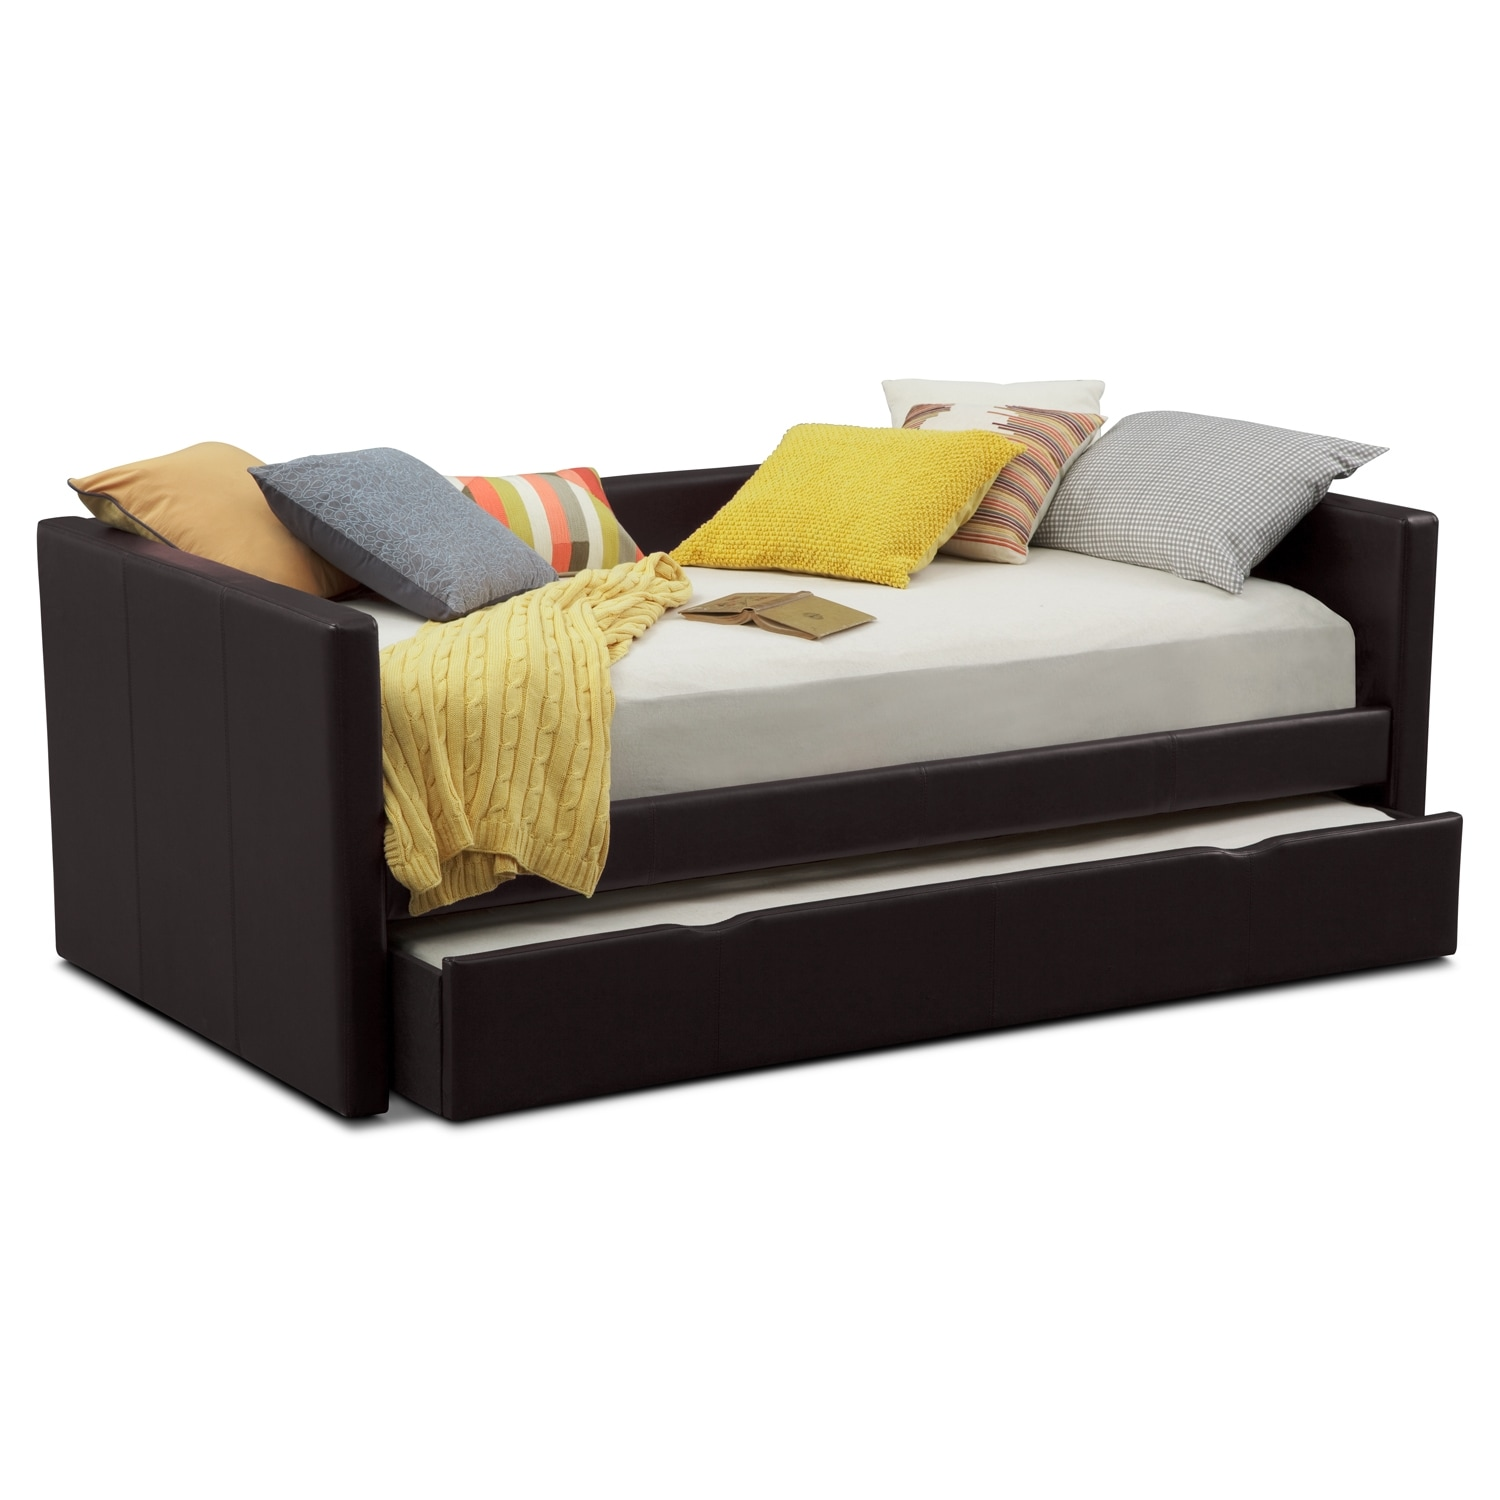 darby brown twin daybed with trundle. Black Bedroom Furniture Sets. Home Design Ideas